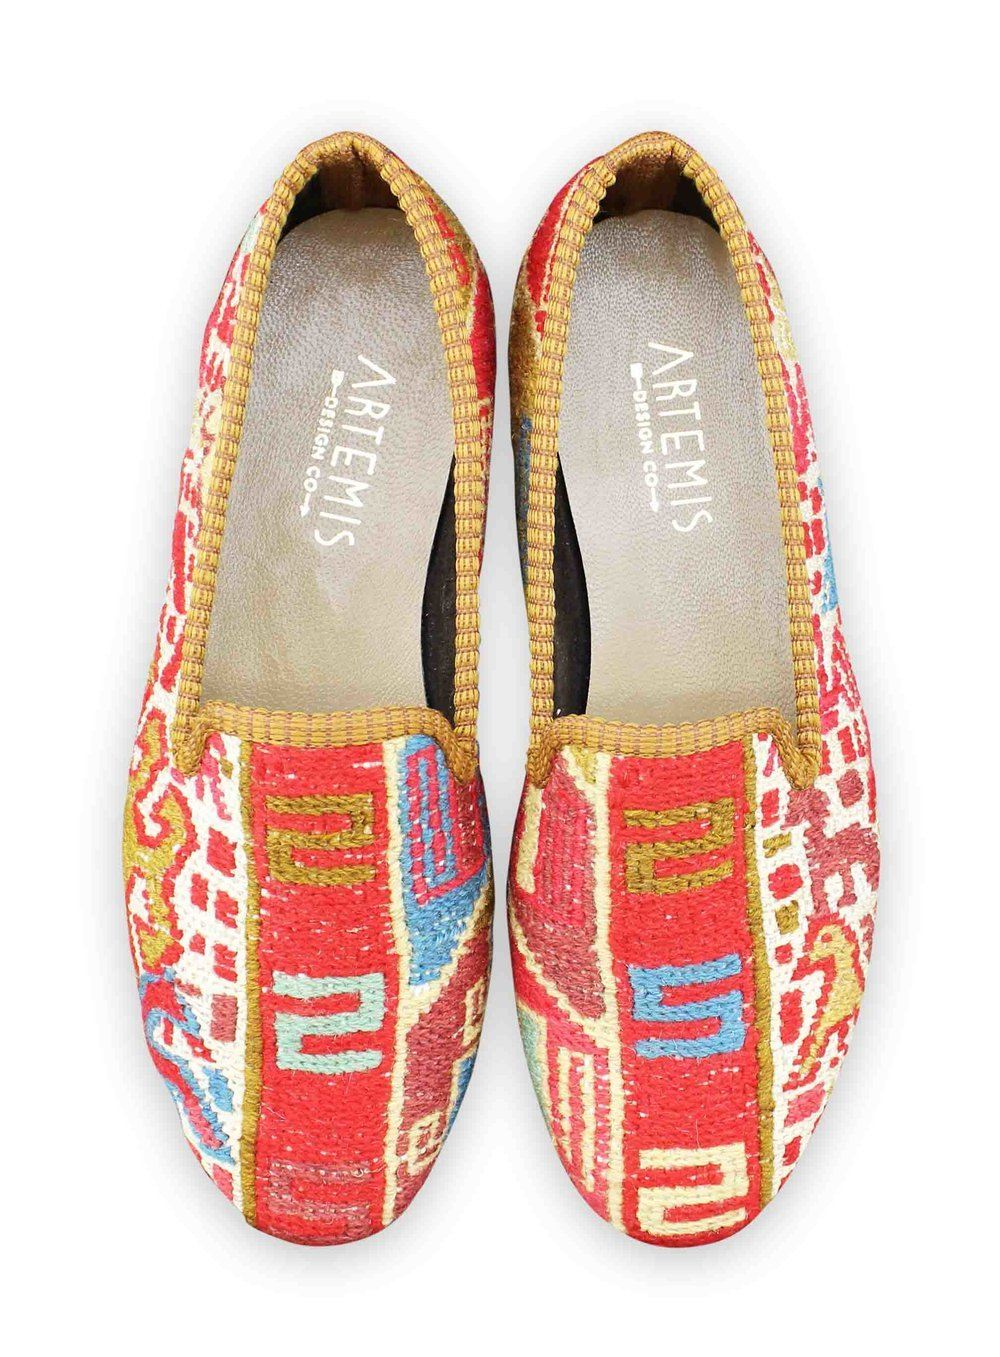 Archived Women's - Women's Sumak Kilim Smoking Shoes - Size 39 (US 9)